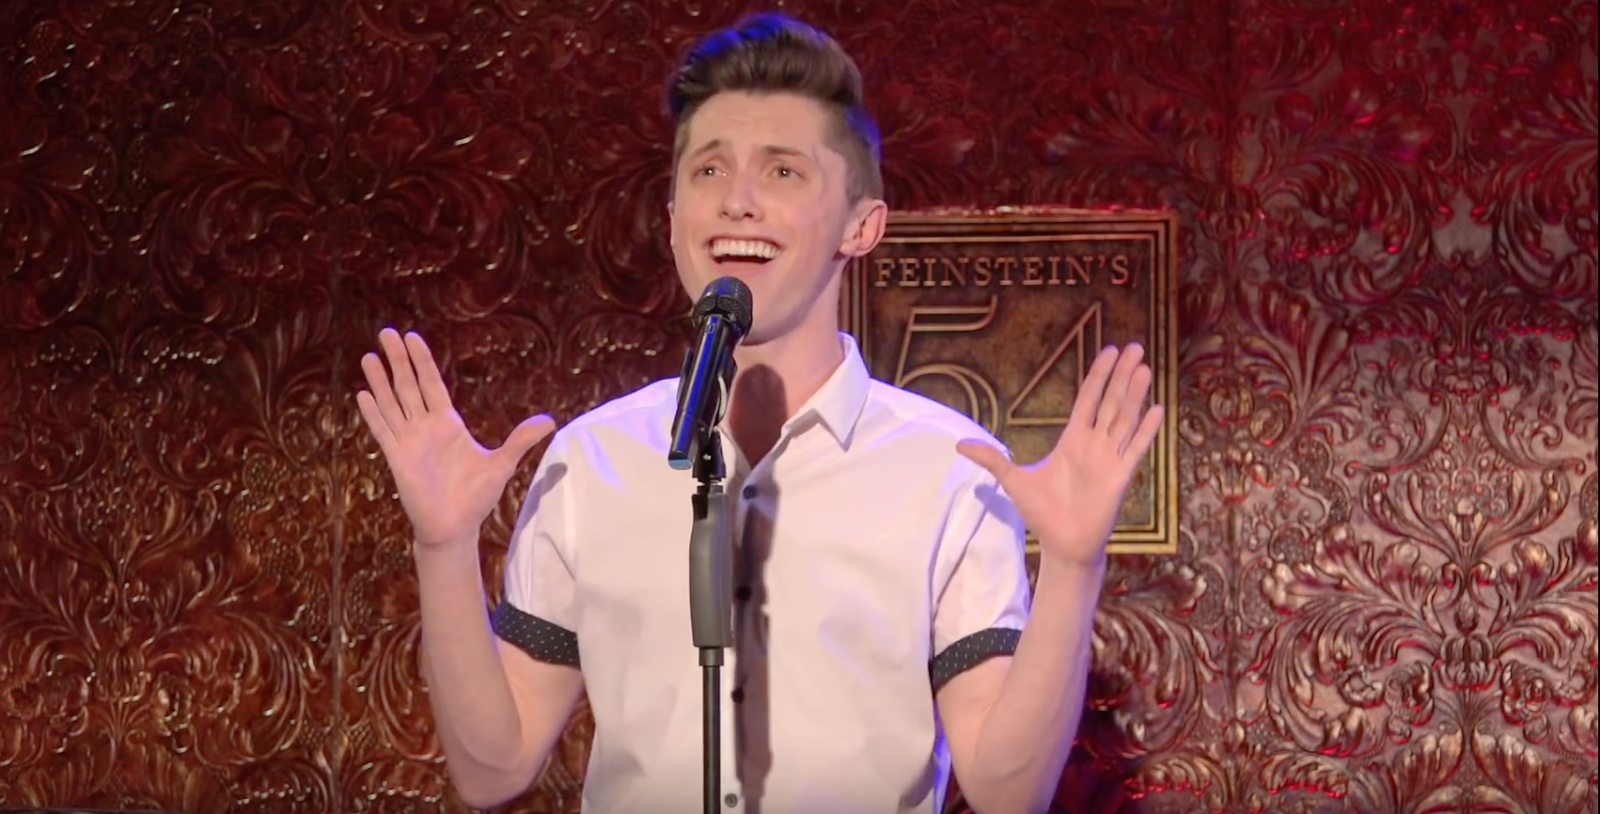 Sophomore Roger Dawley has had the honor of performing in shows at Broadway's legendary 54 Below, the same venue that has held concerts by Orfeh, Telly Leung and Lesli Margherita. (PHOTO COURTESY OF ROGER DAWLEY)